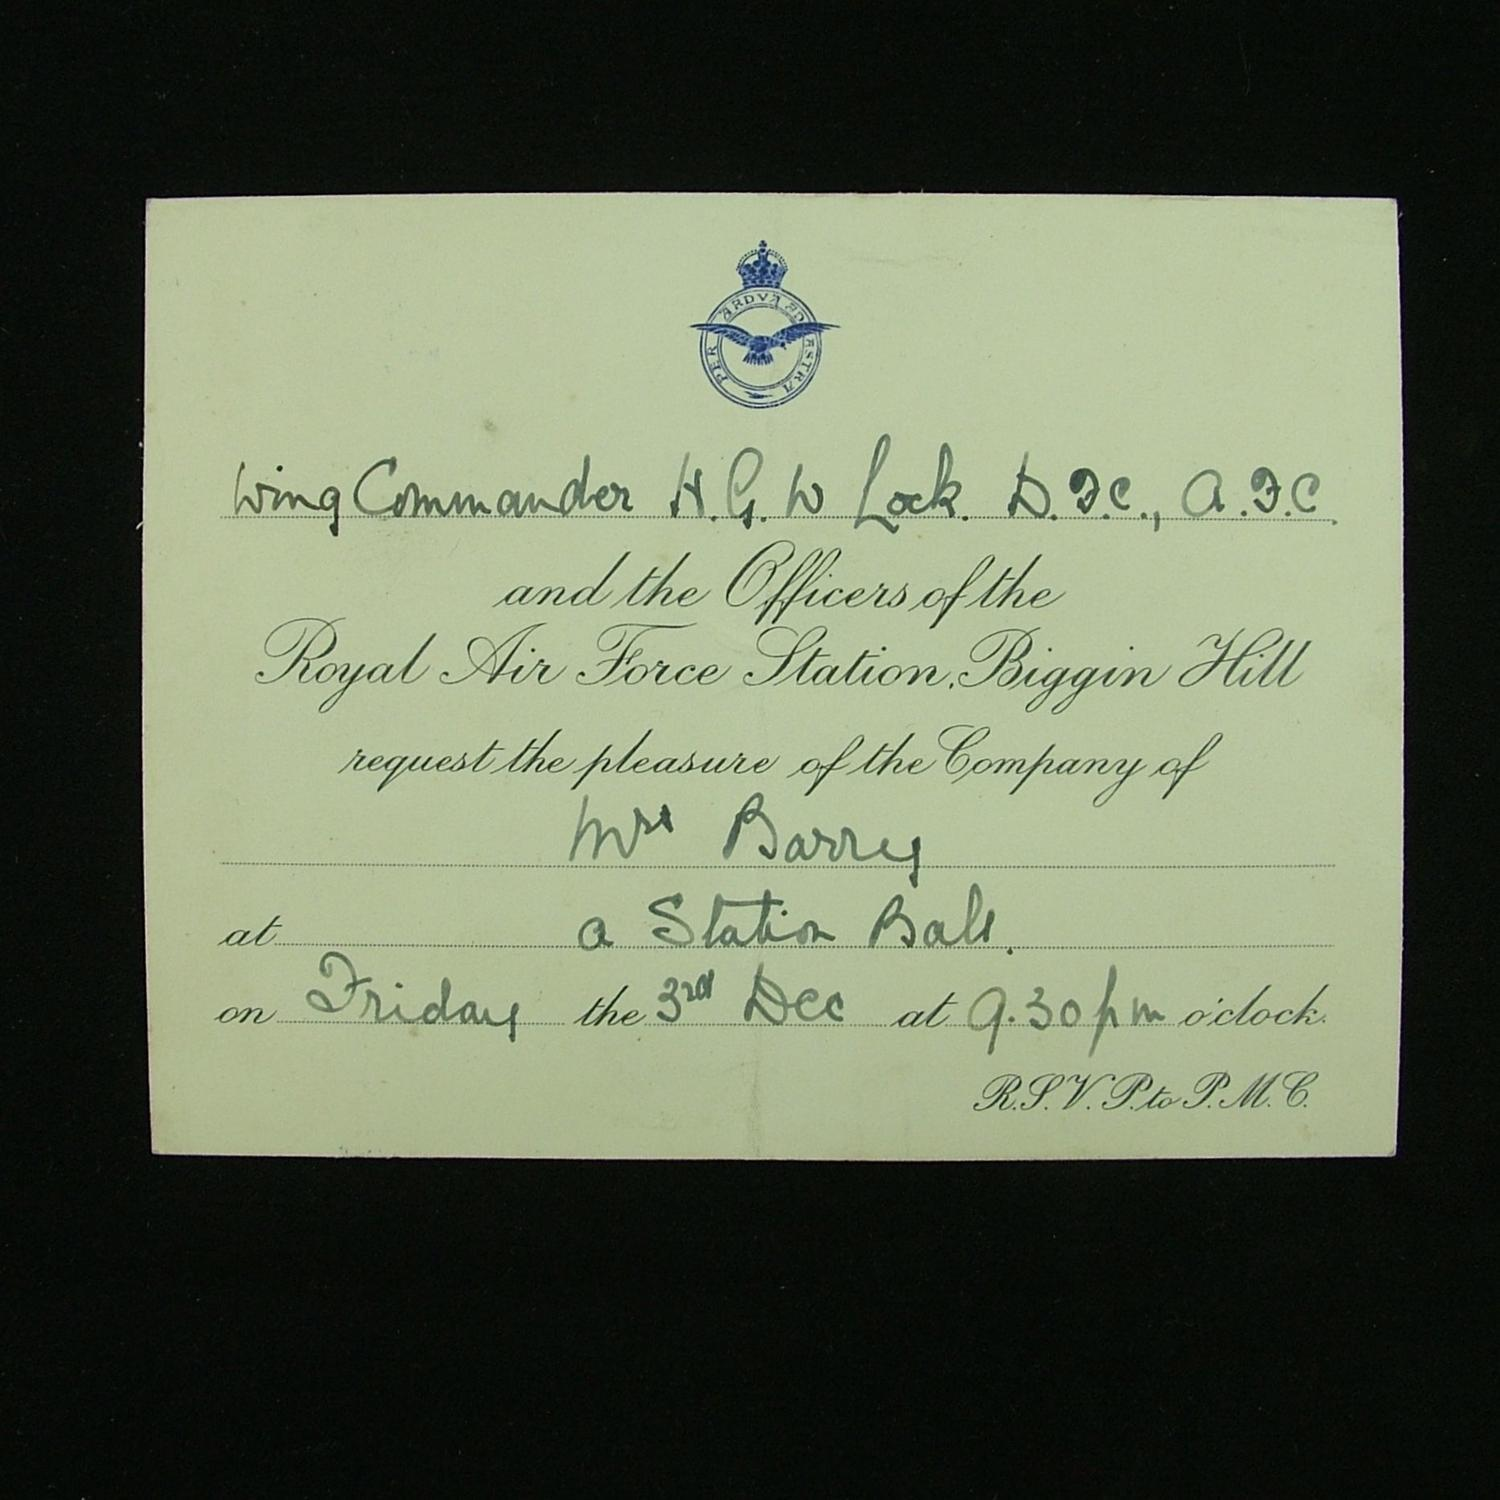 RAF Biggin Hill invitation c.1937